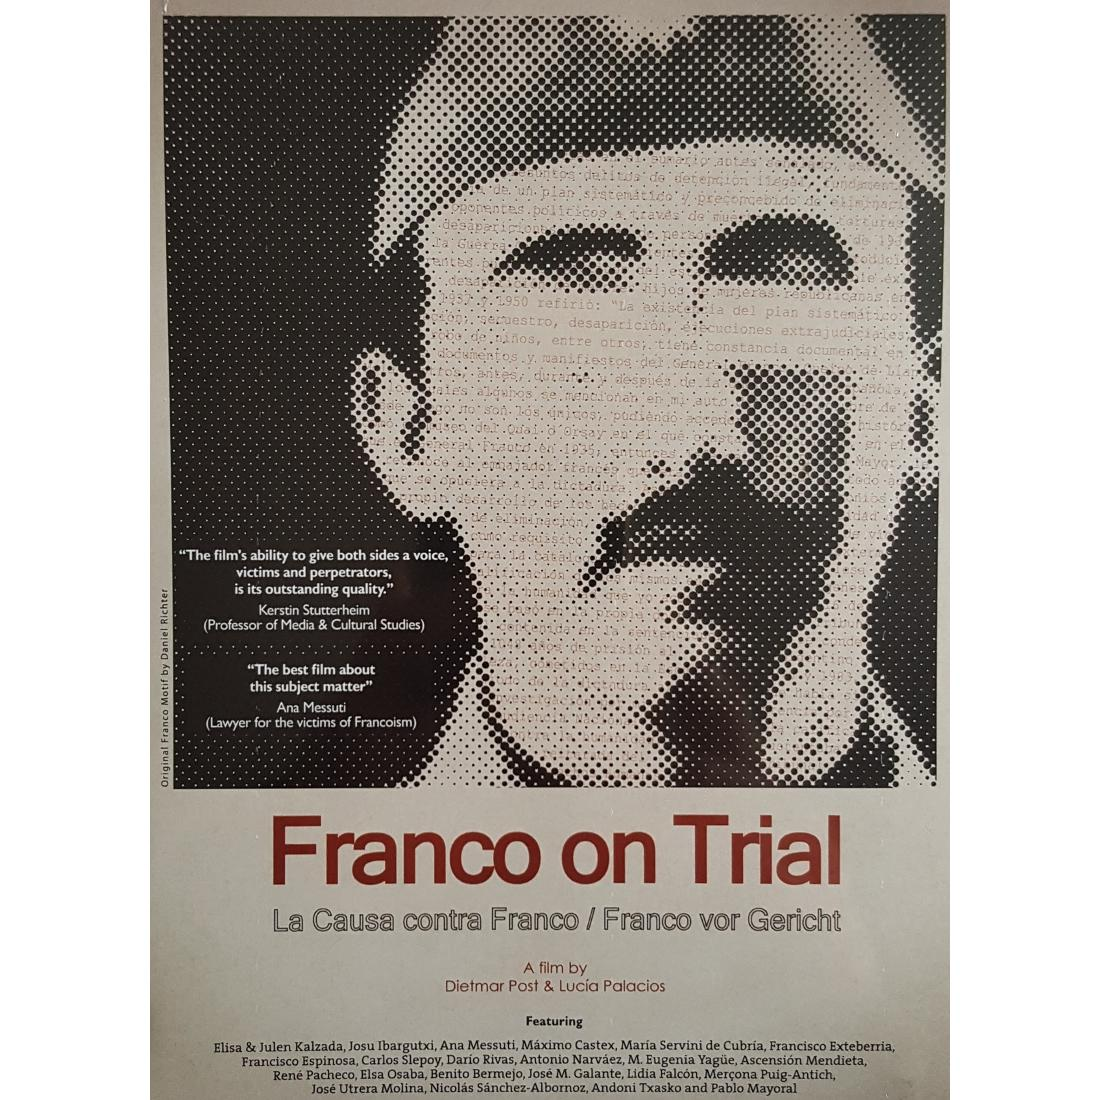 La causa contro Franco (Franco on Trial)